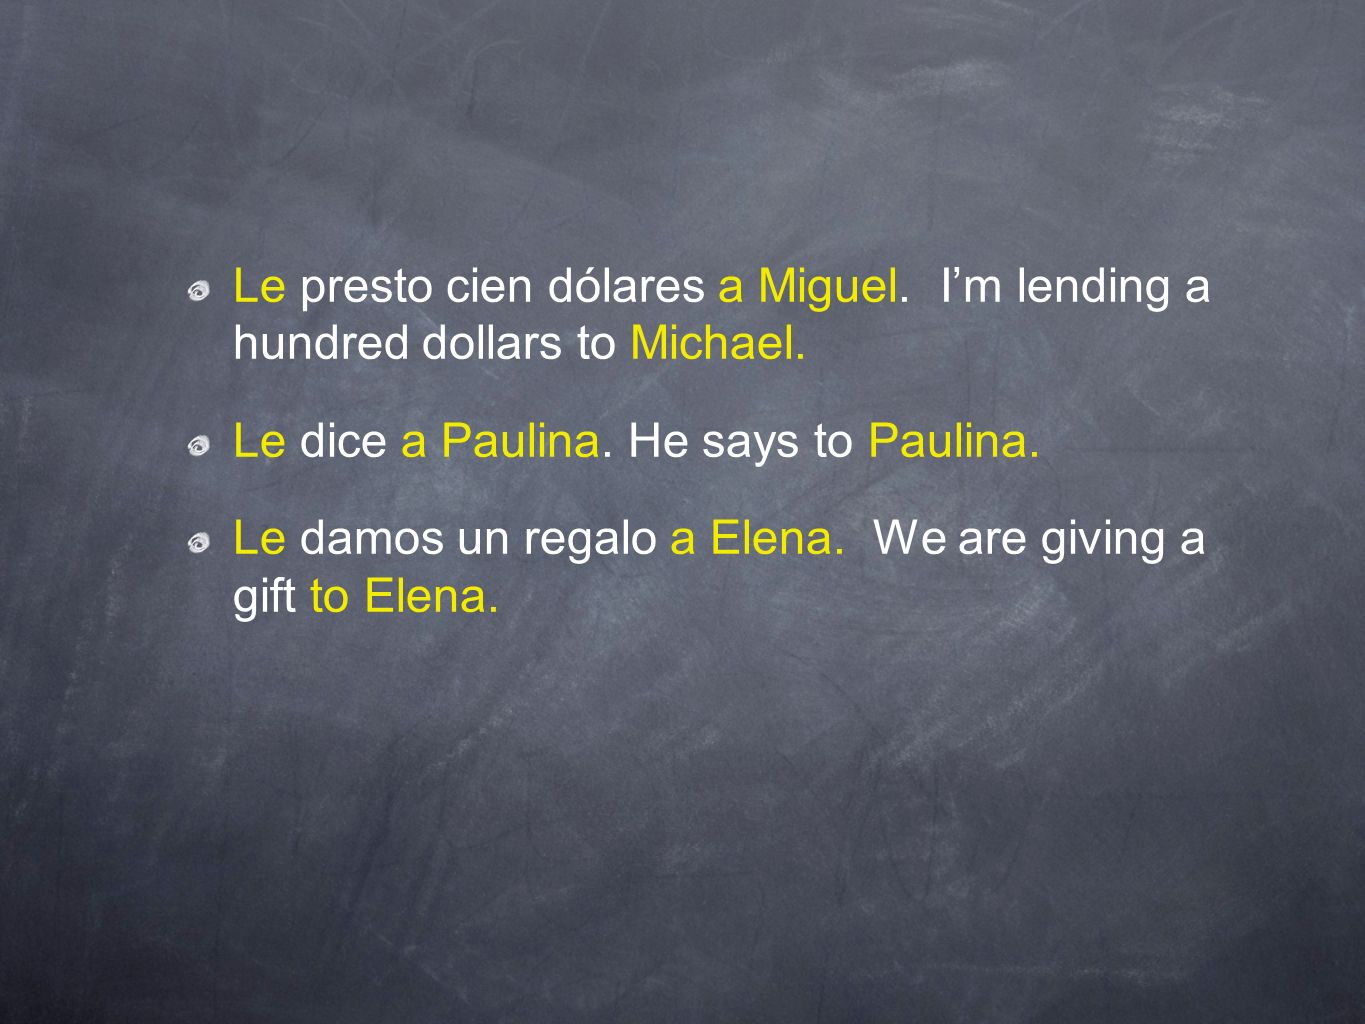 Le presto cien dólares a Miguel. Im lending a hundred dollars to Michael. Le dice a Paulina. He says to Paulina. Le damos un regalo a Elena. We are gi